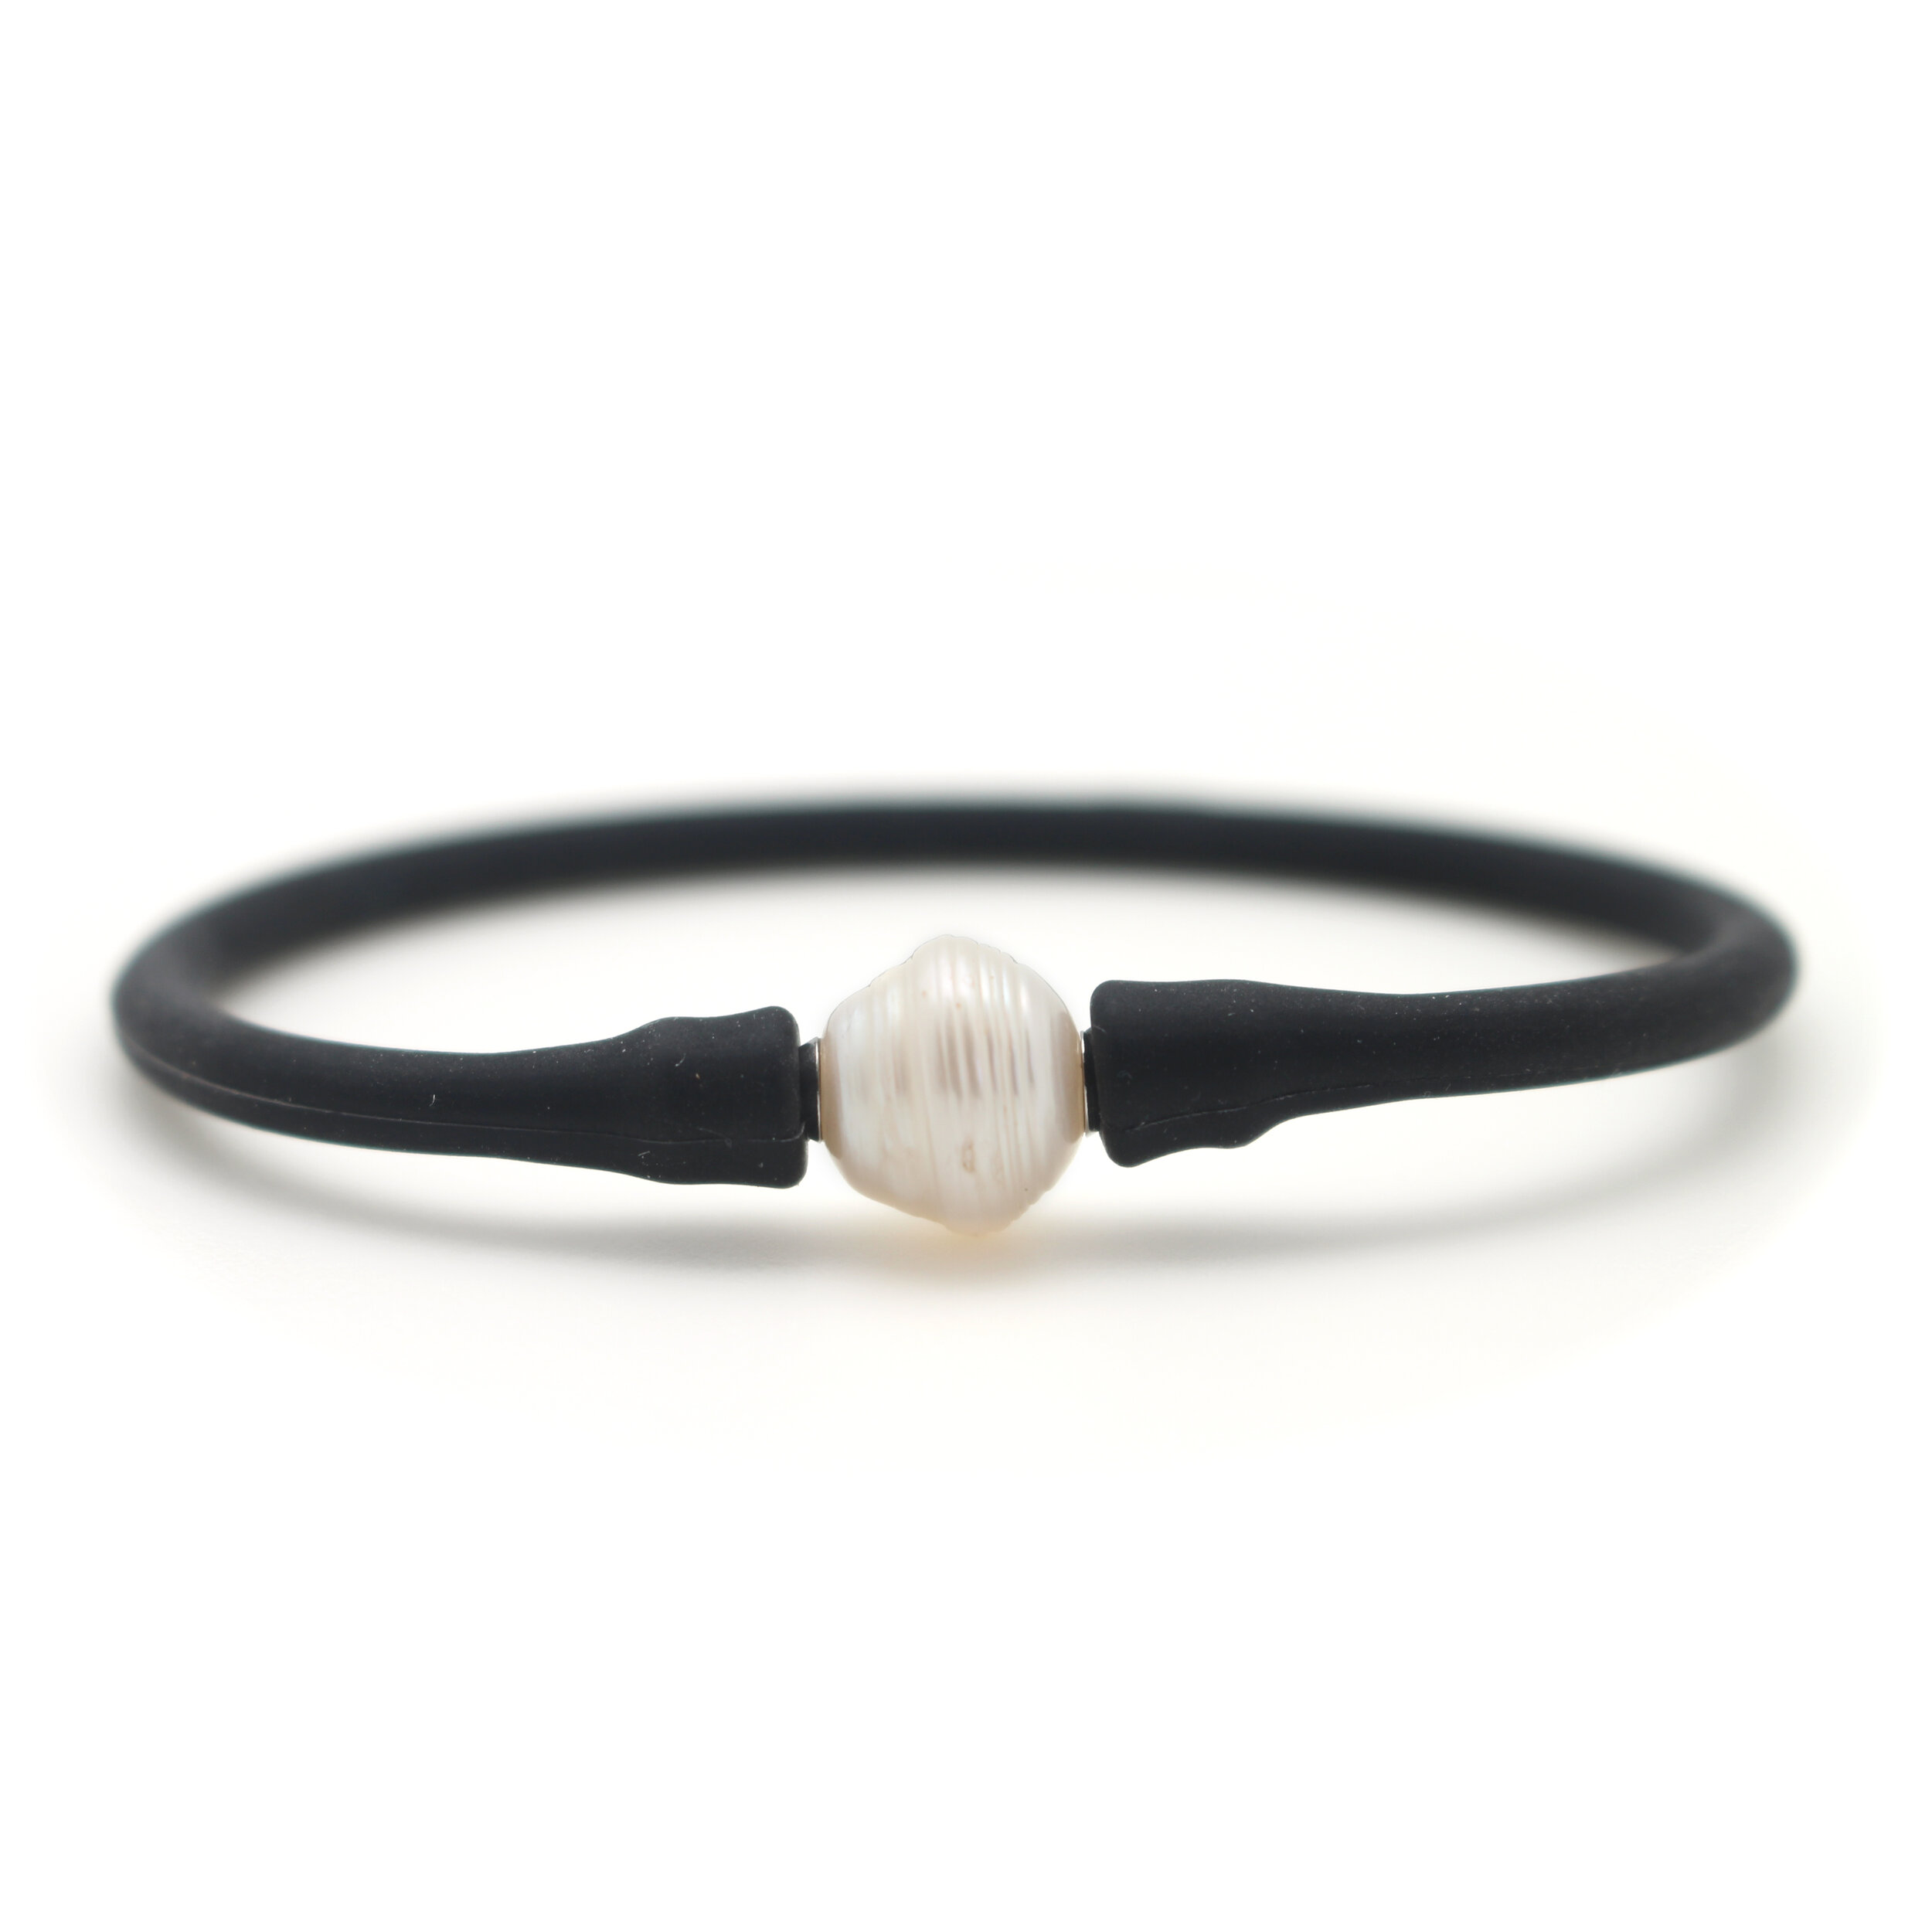 FREE Pearl Bracelet - The first 50 attendees will receive a free pearl bracelet each day of the show. Be one of the first in line to claim your prize!